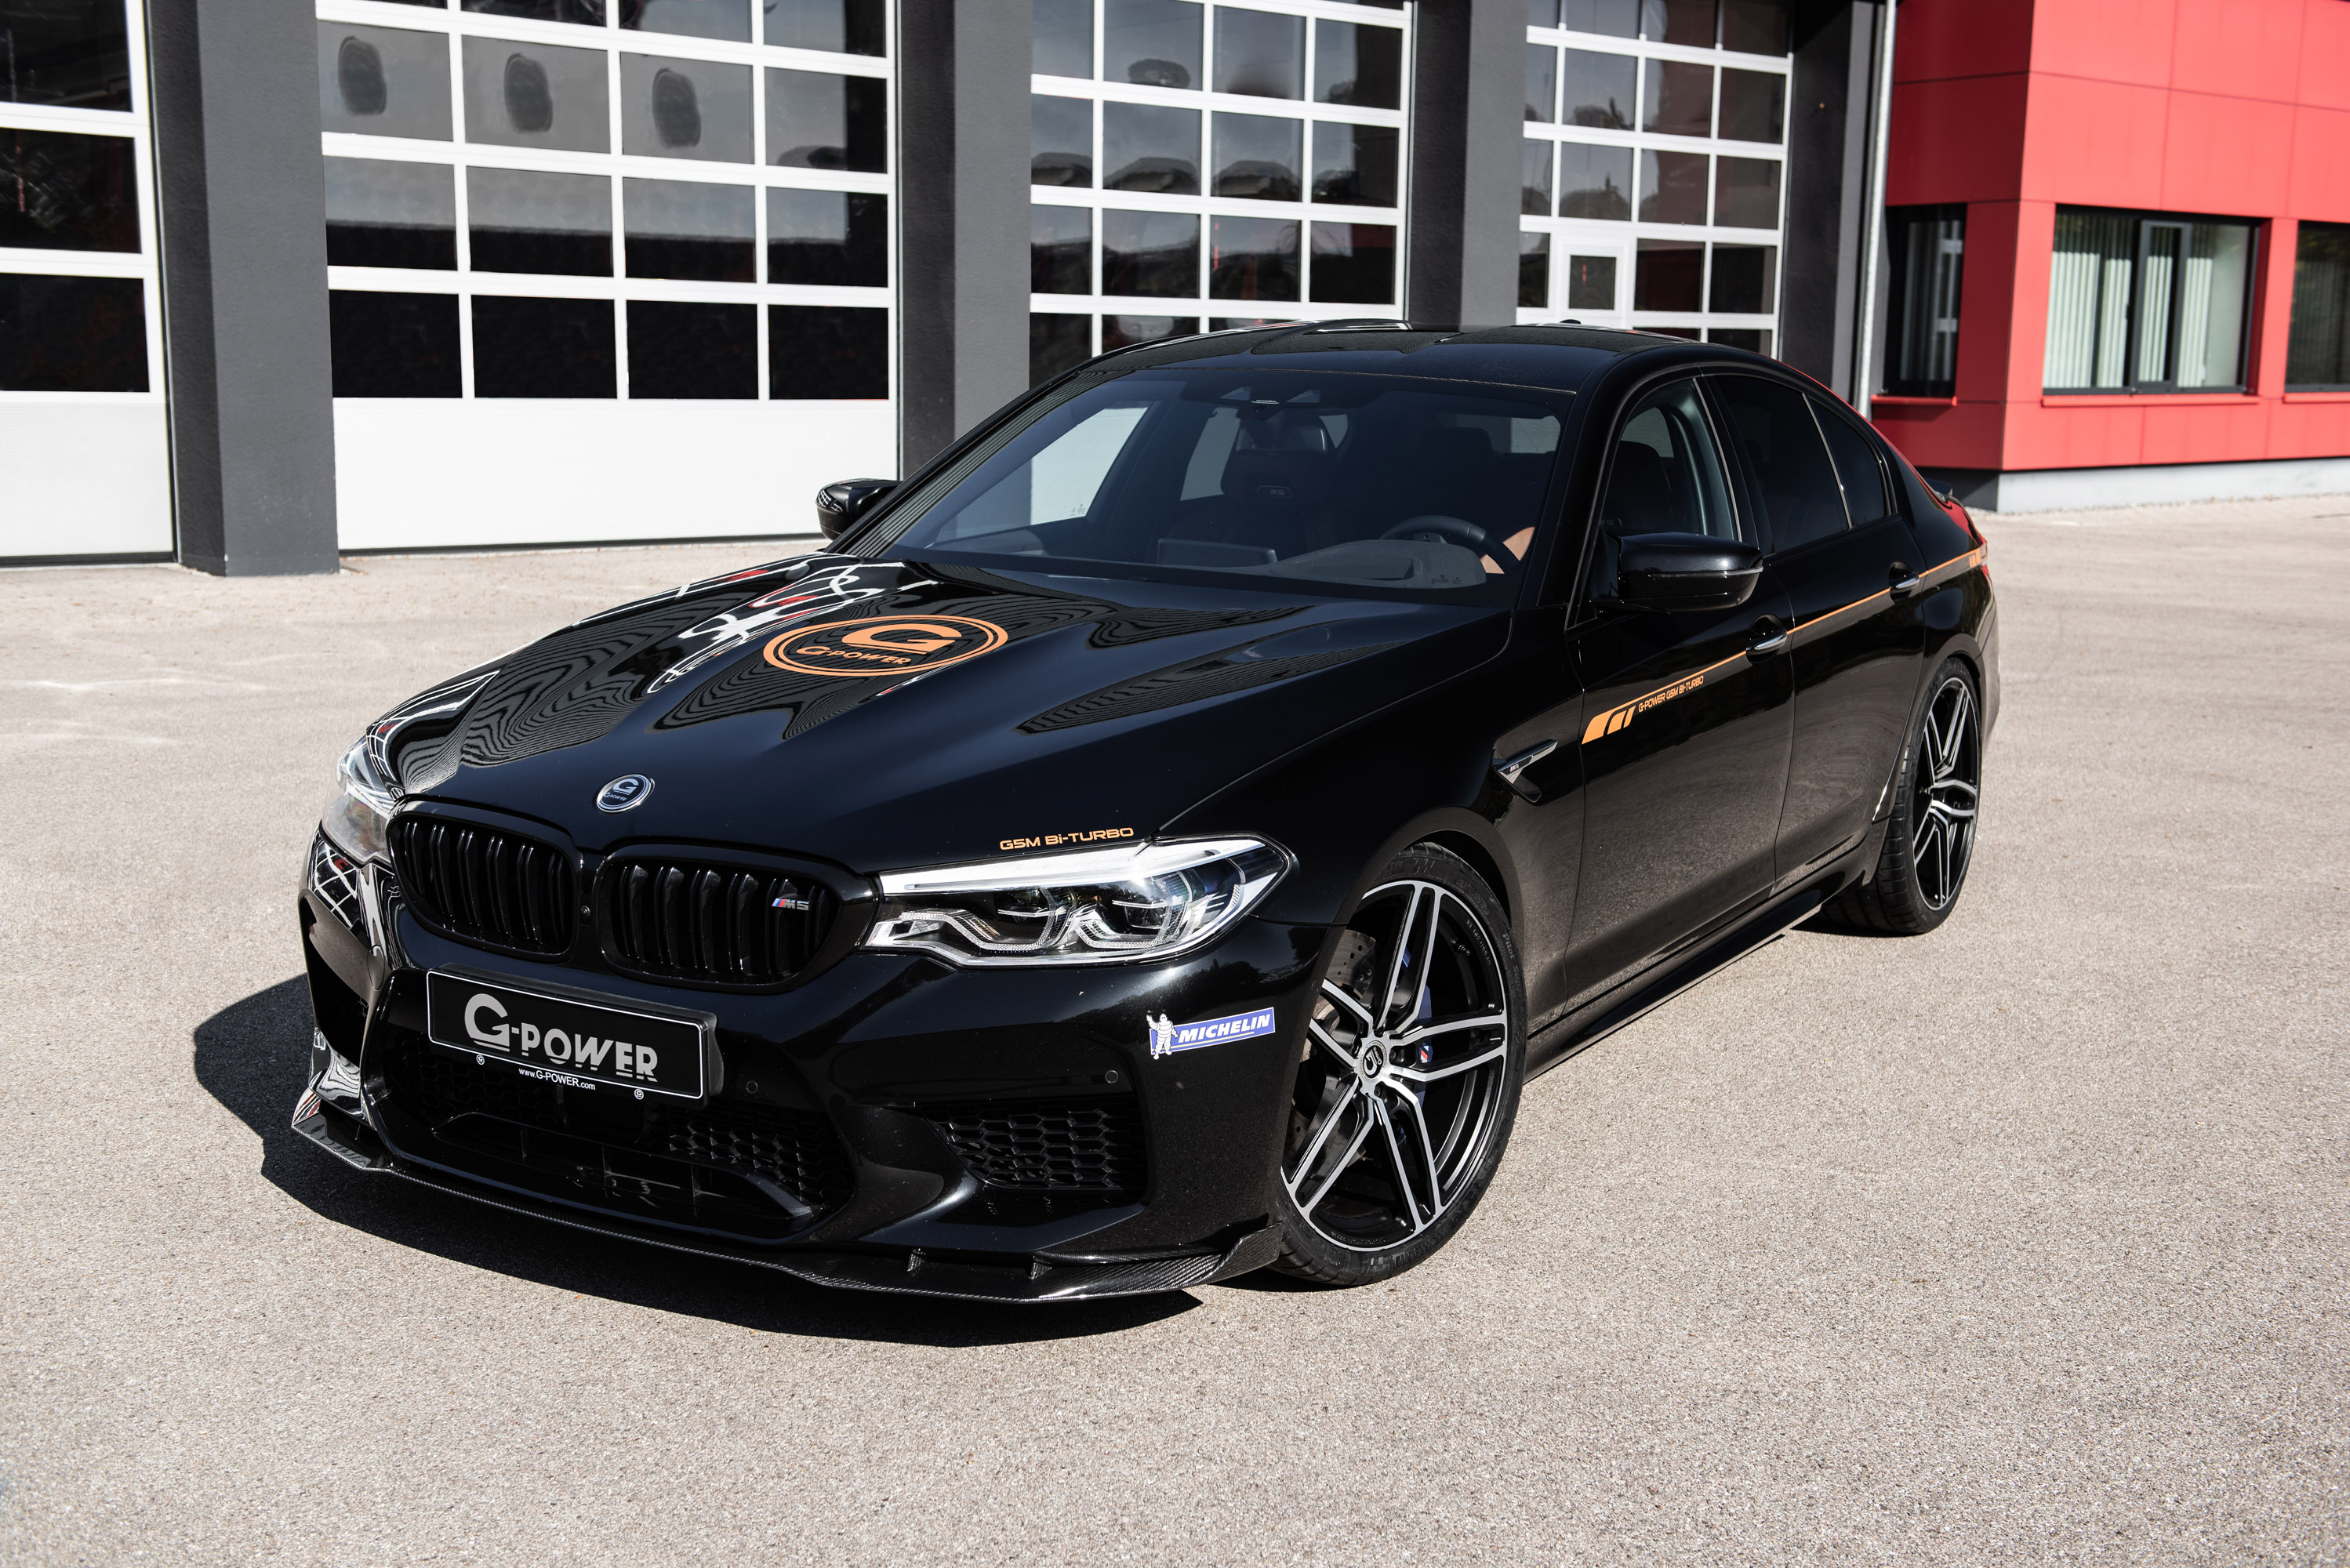 g power presents new bmw m5 upgrade concept. Black Bedroom Furniture Sets. Home Design Ideas